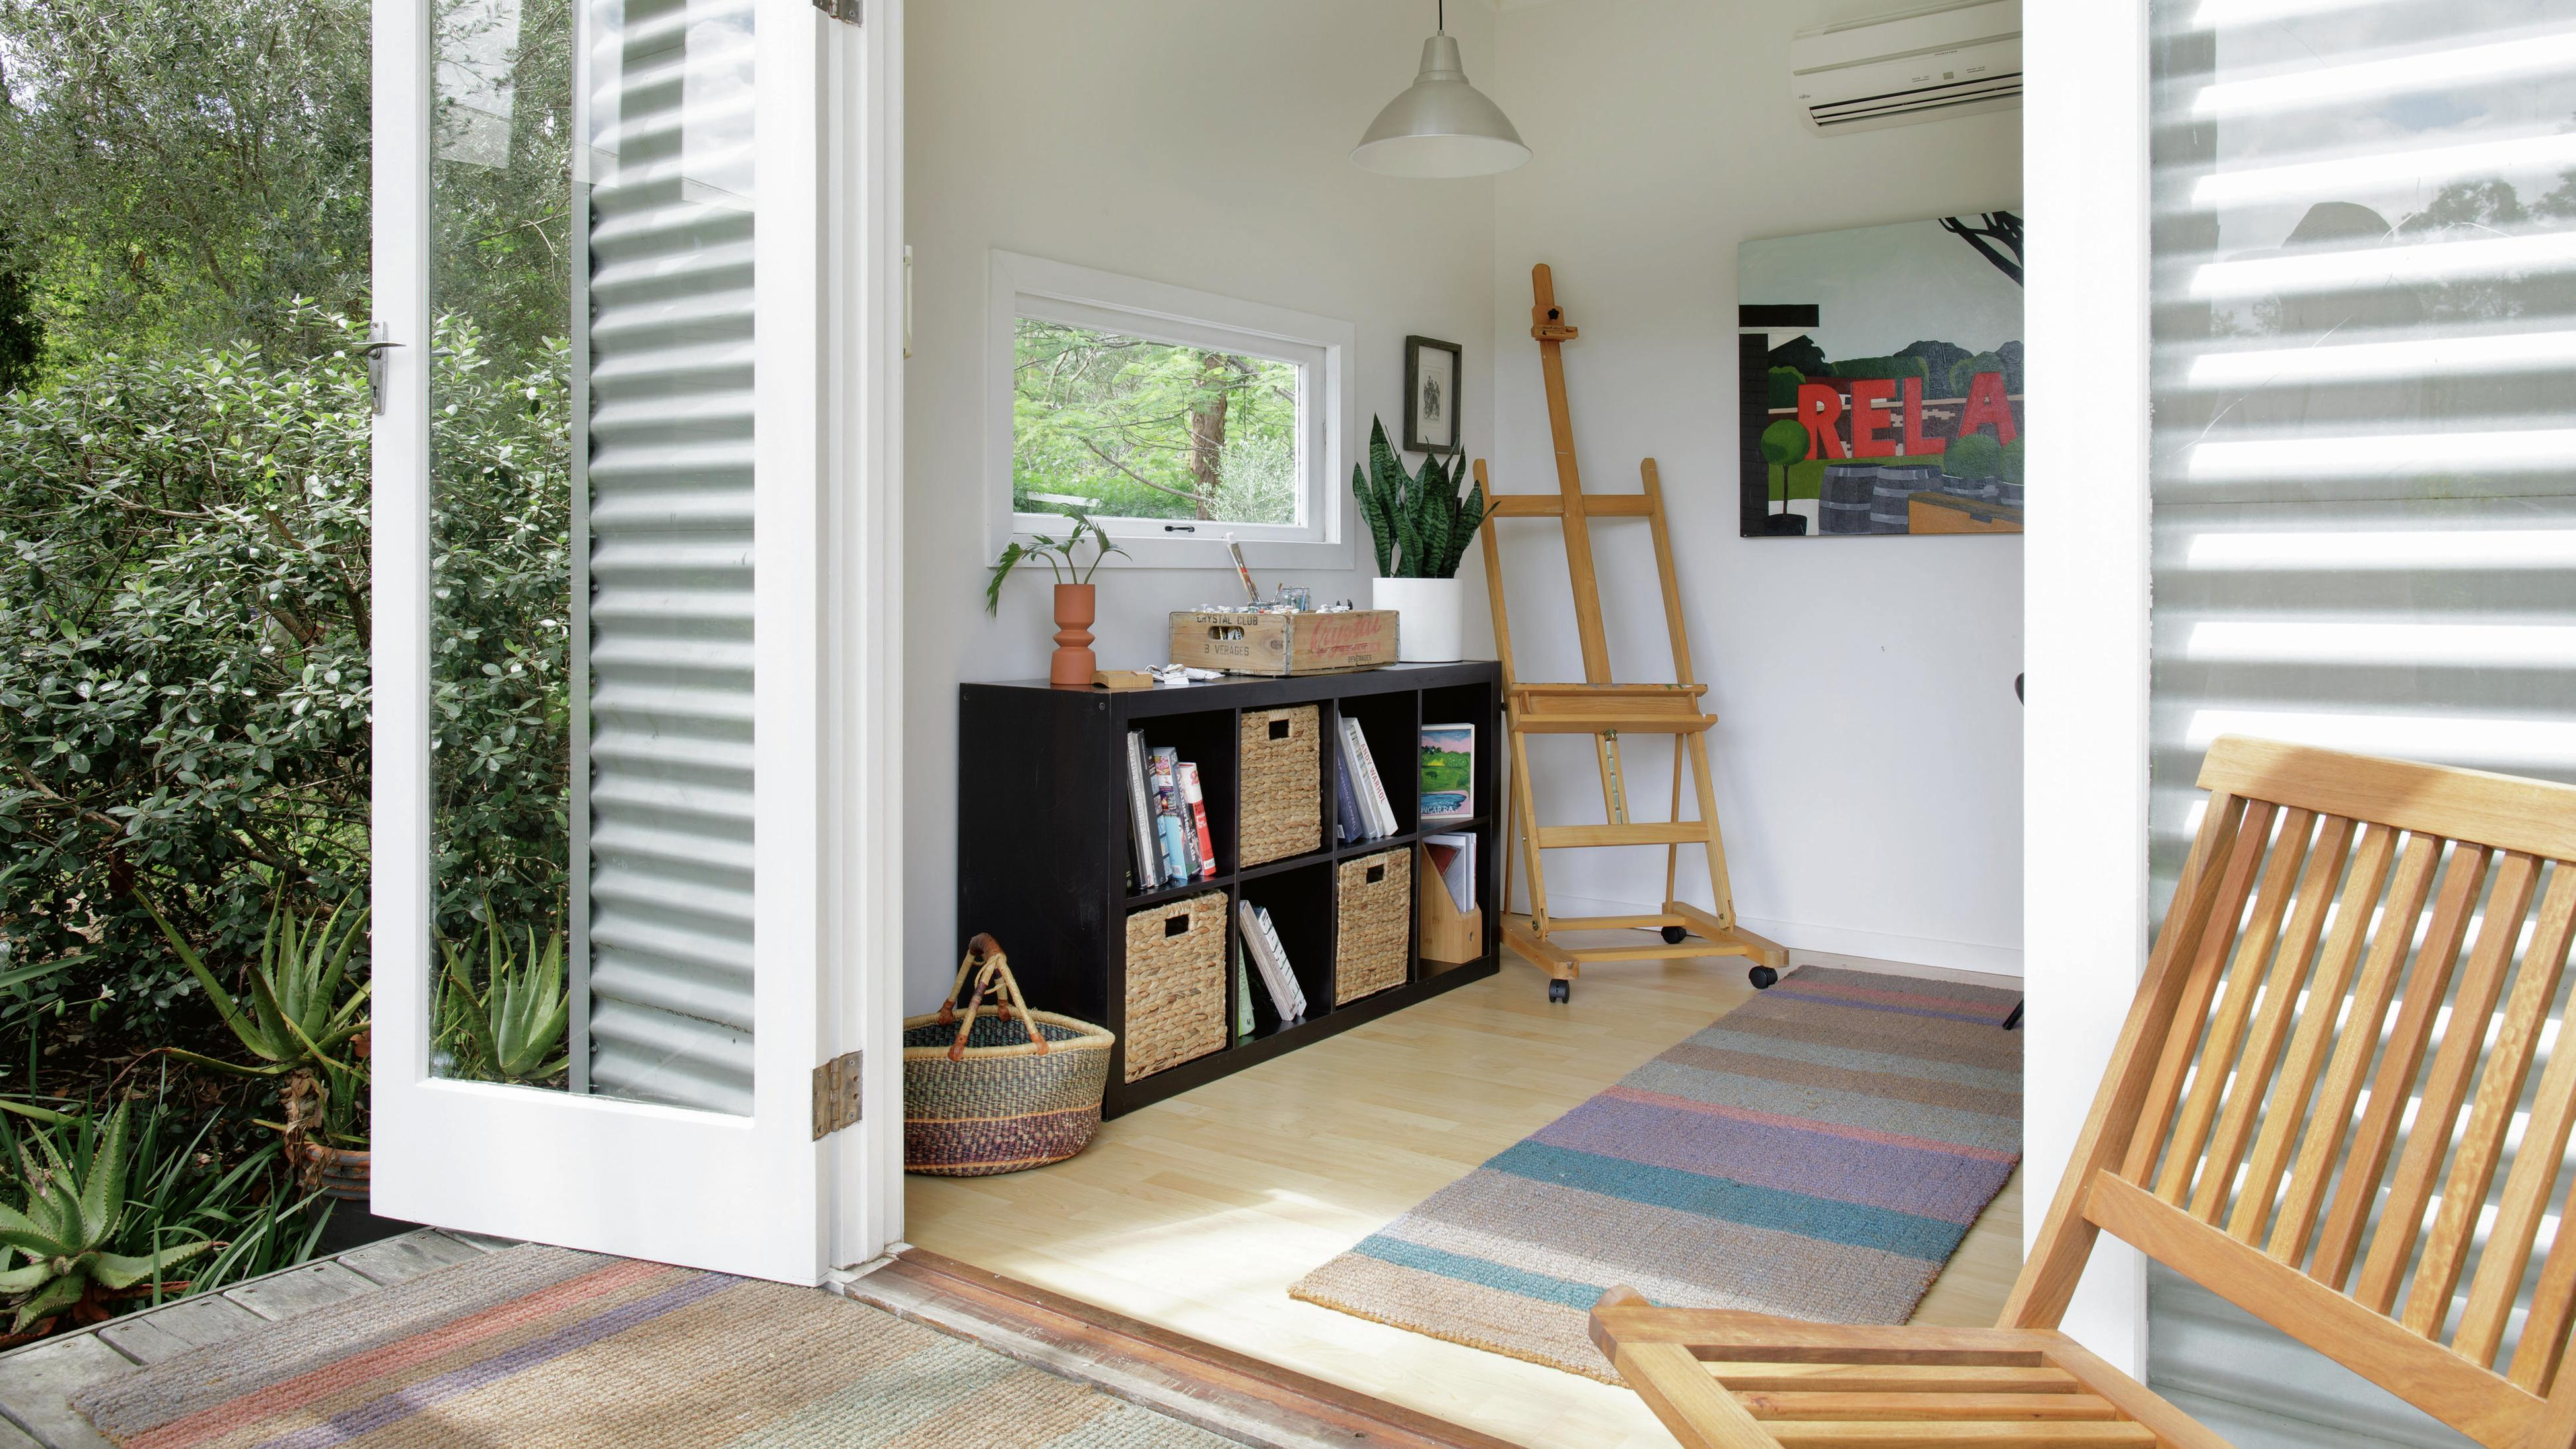 View from a deck through French doors into a home office